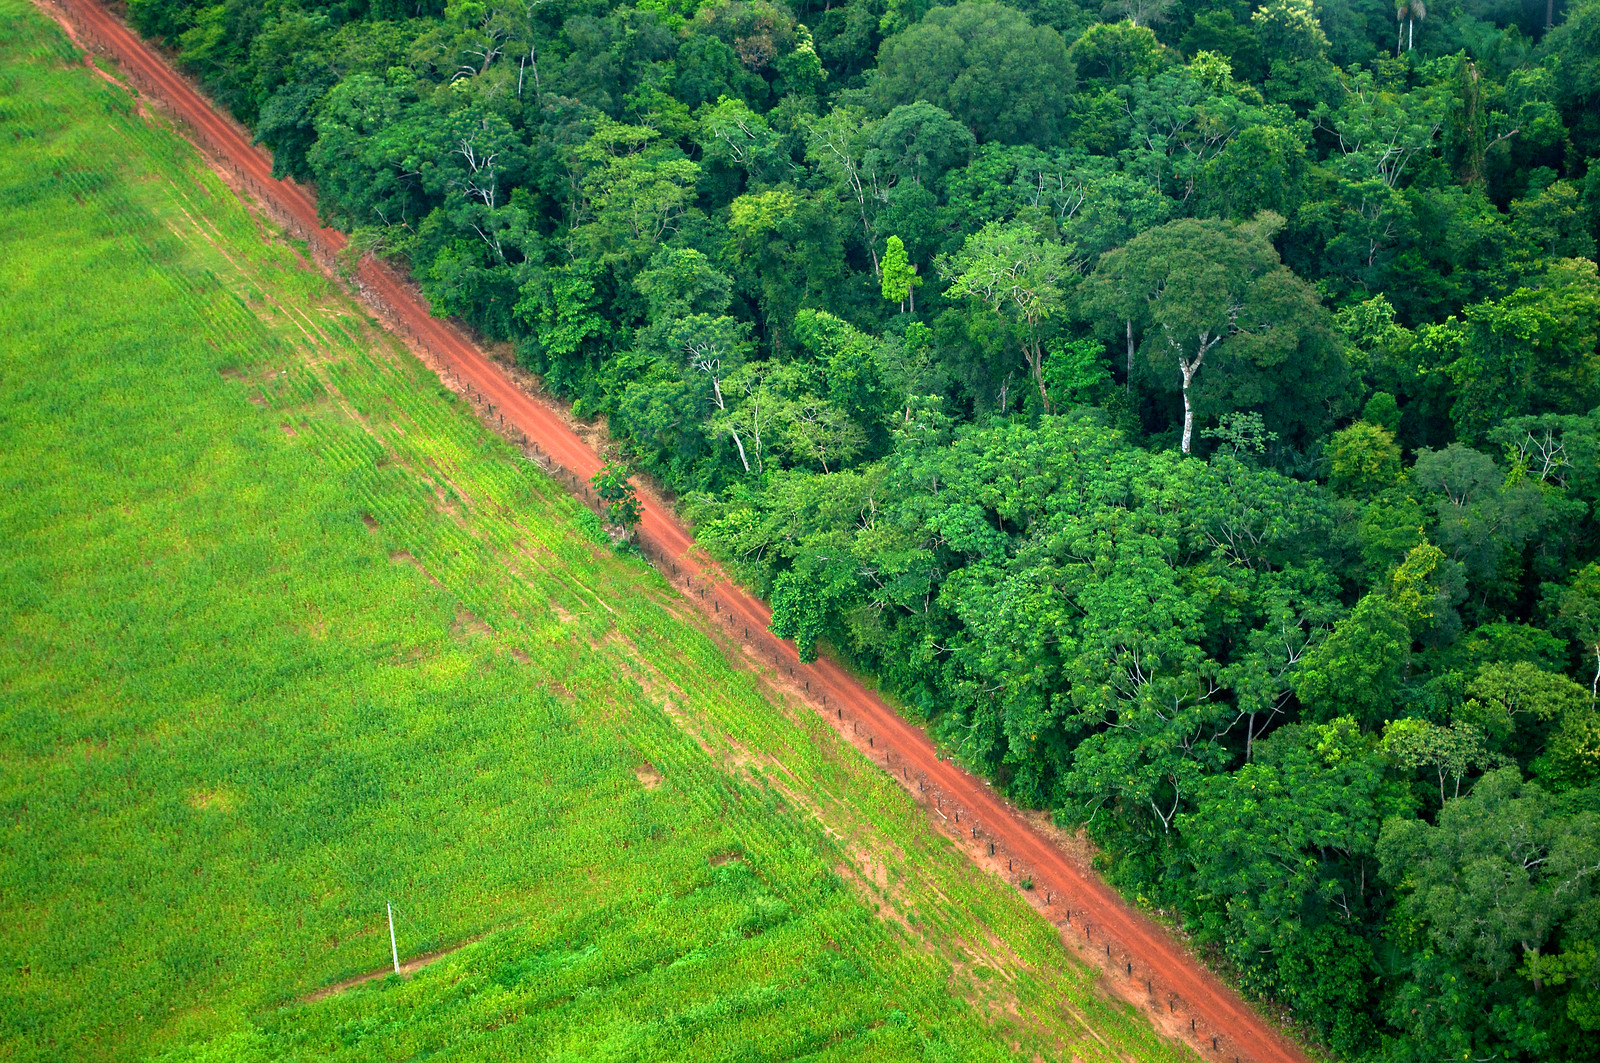 photo of deforestation near Rio Branco, Acre, Brazil